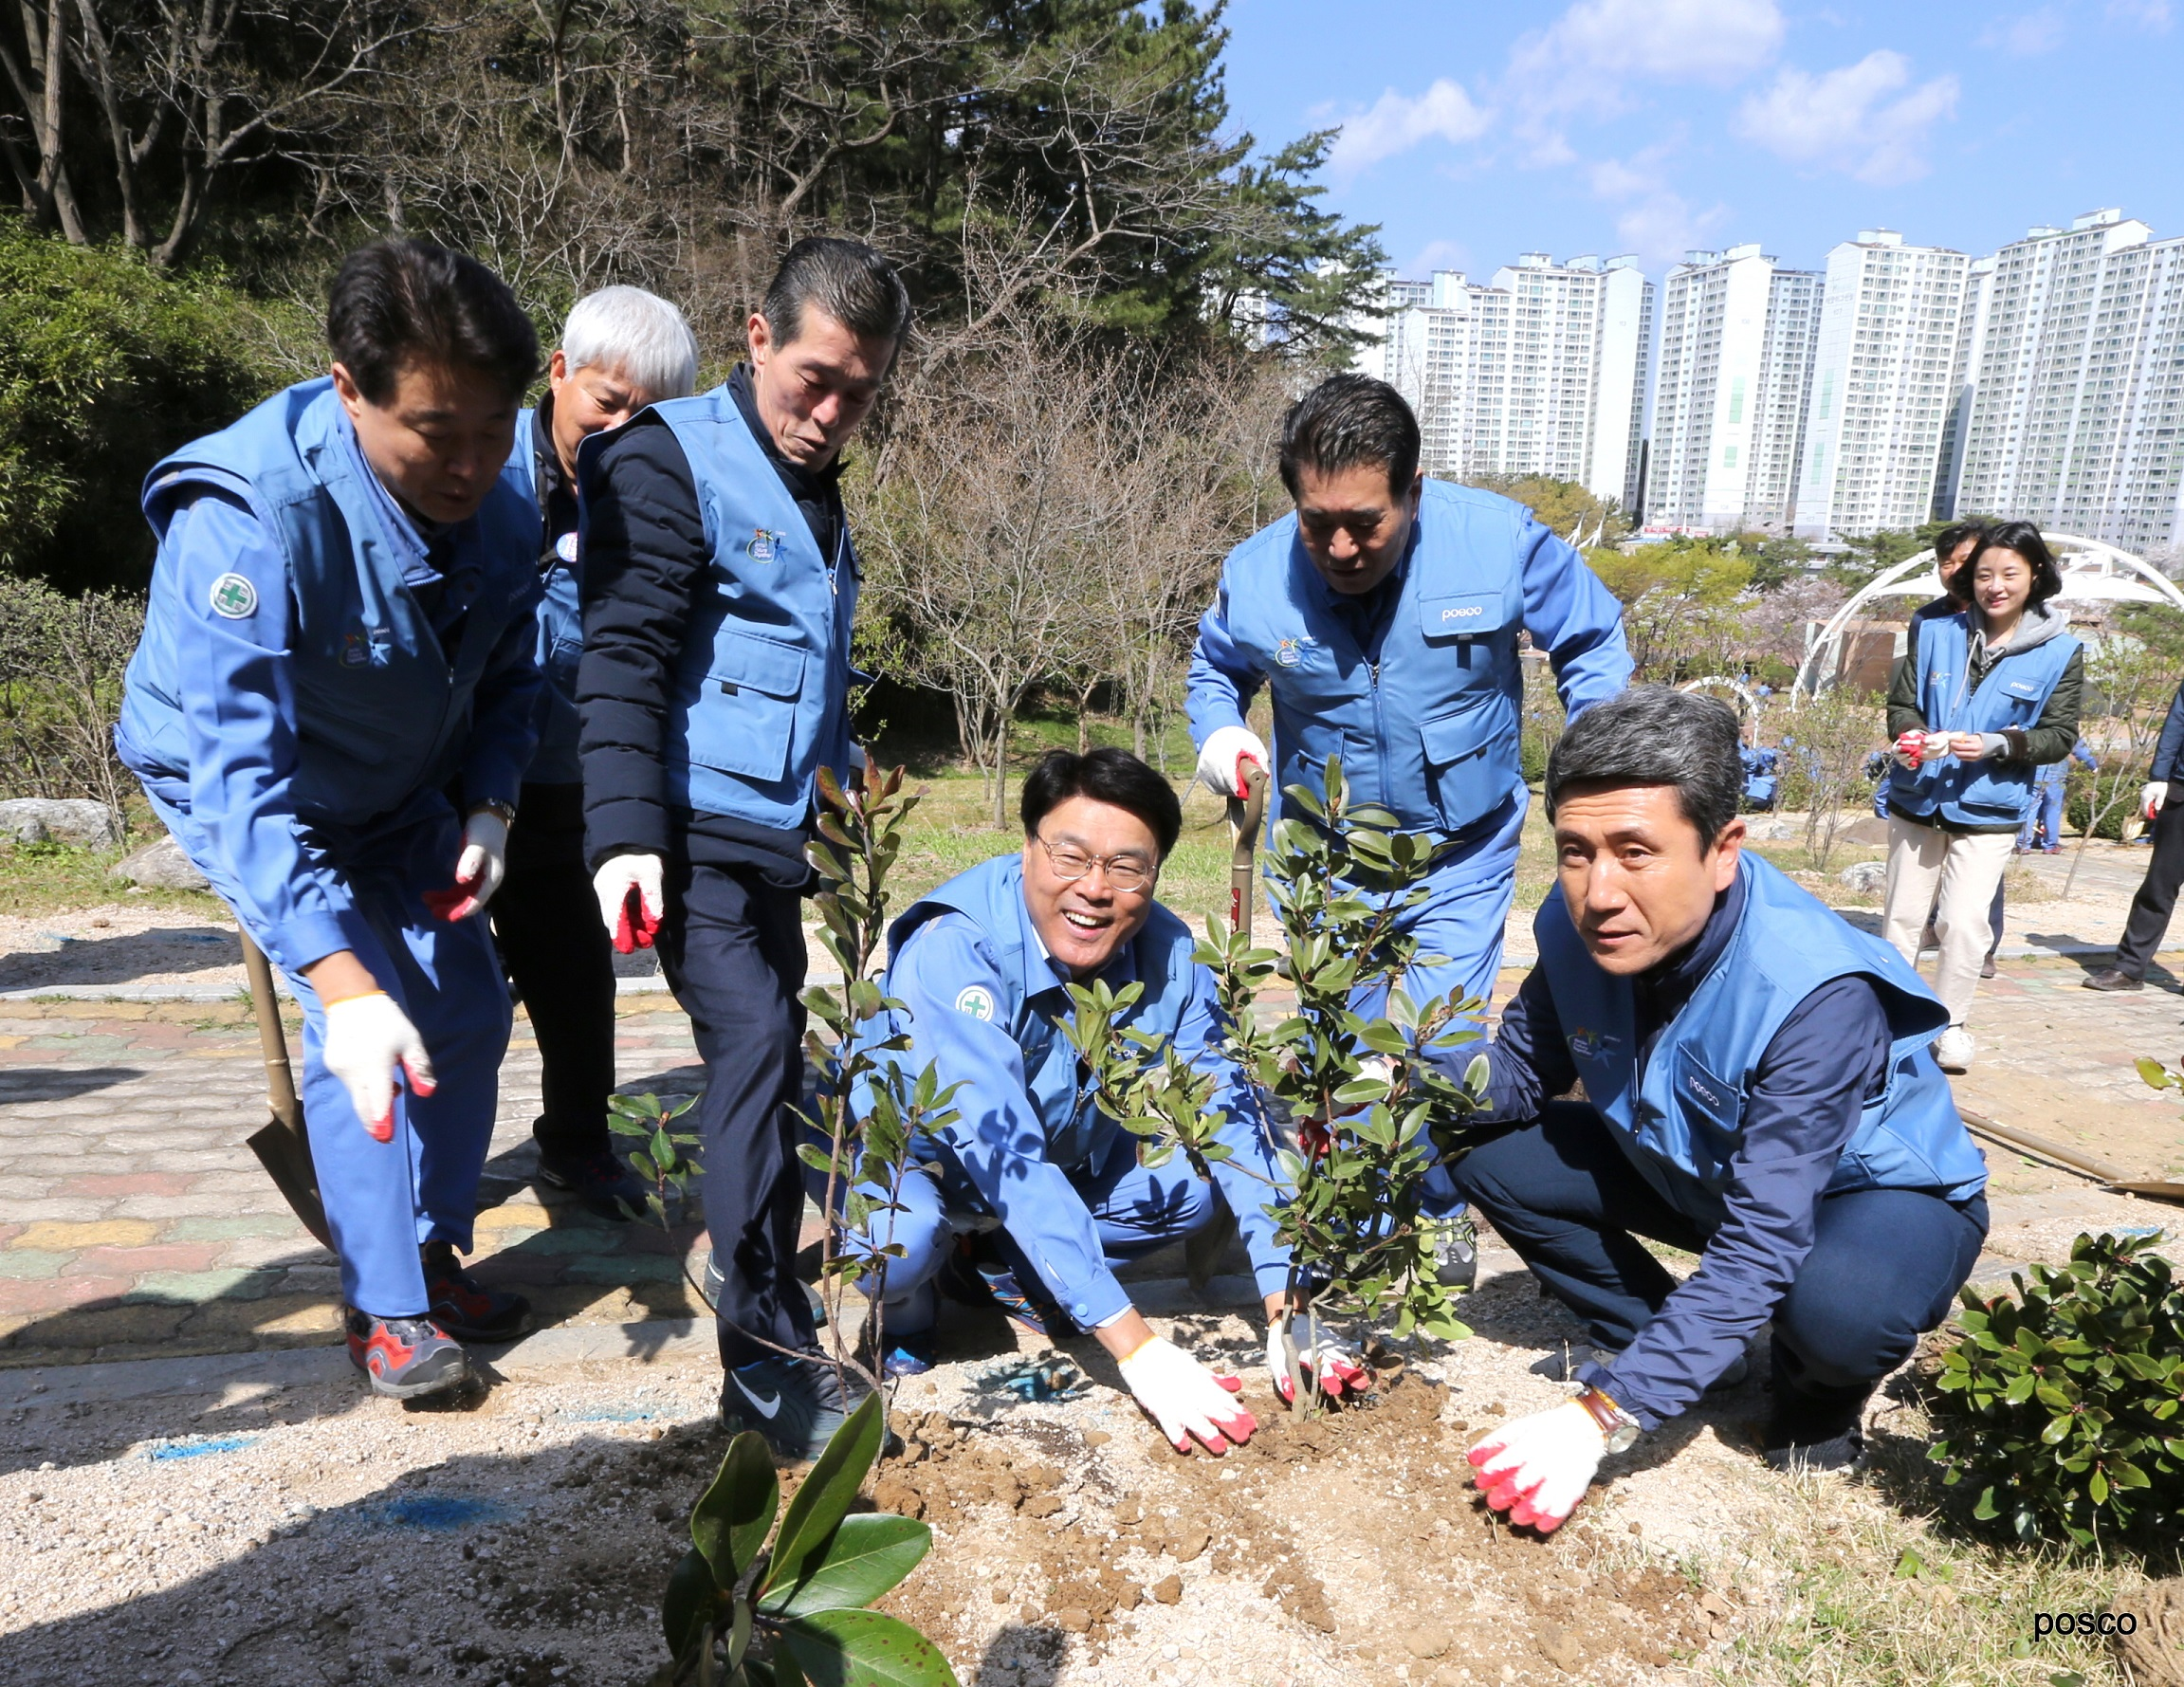 POSCO CEO Jeong-Woo Choi (seated on the left) with the Pohang Mayor Kang-Deok Lee (far right) at tree-planting in Hwanho Park